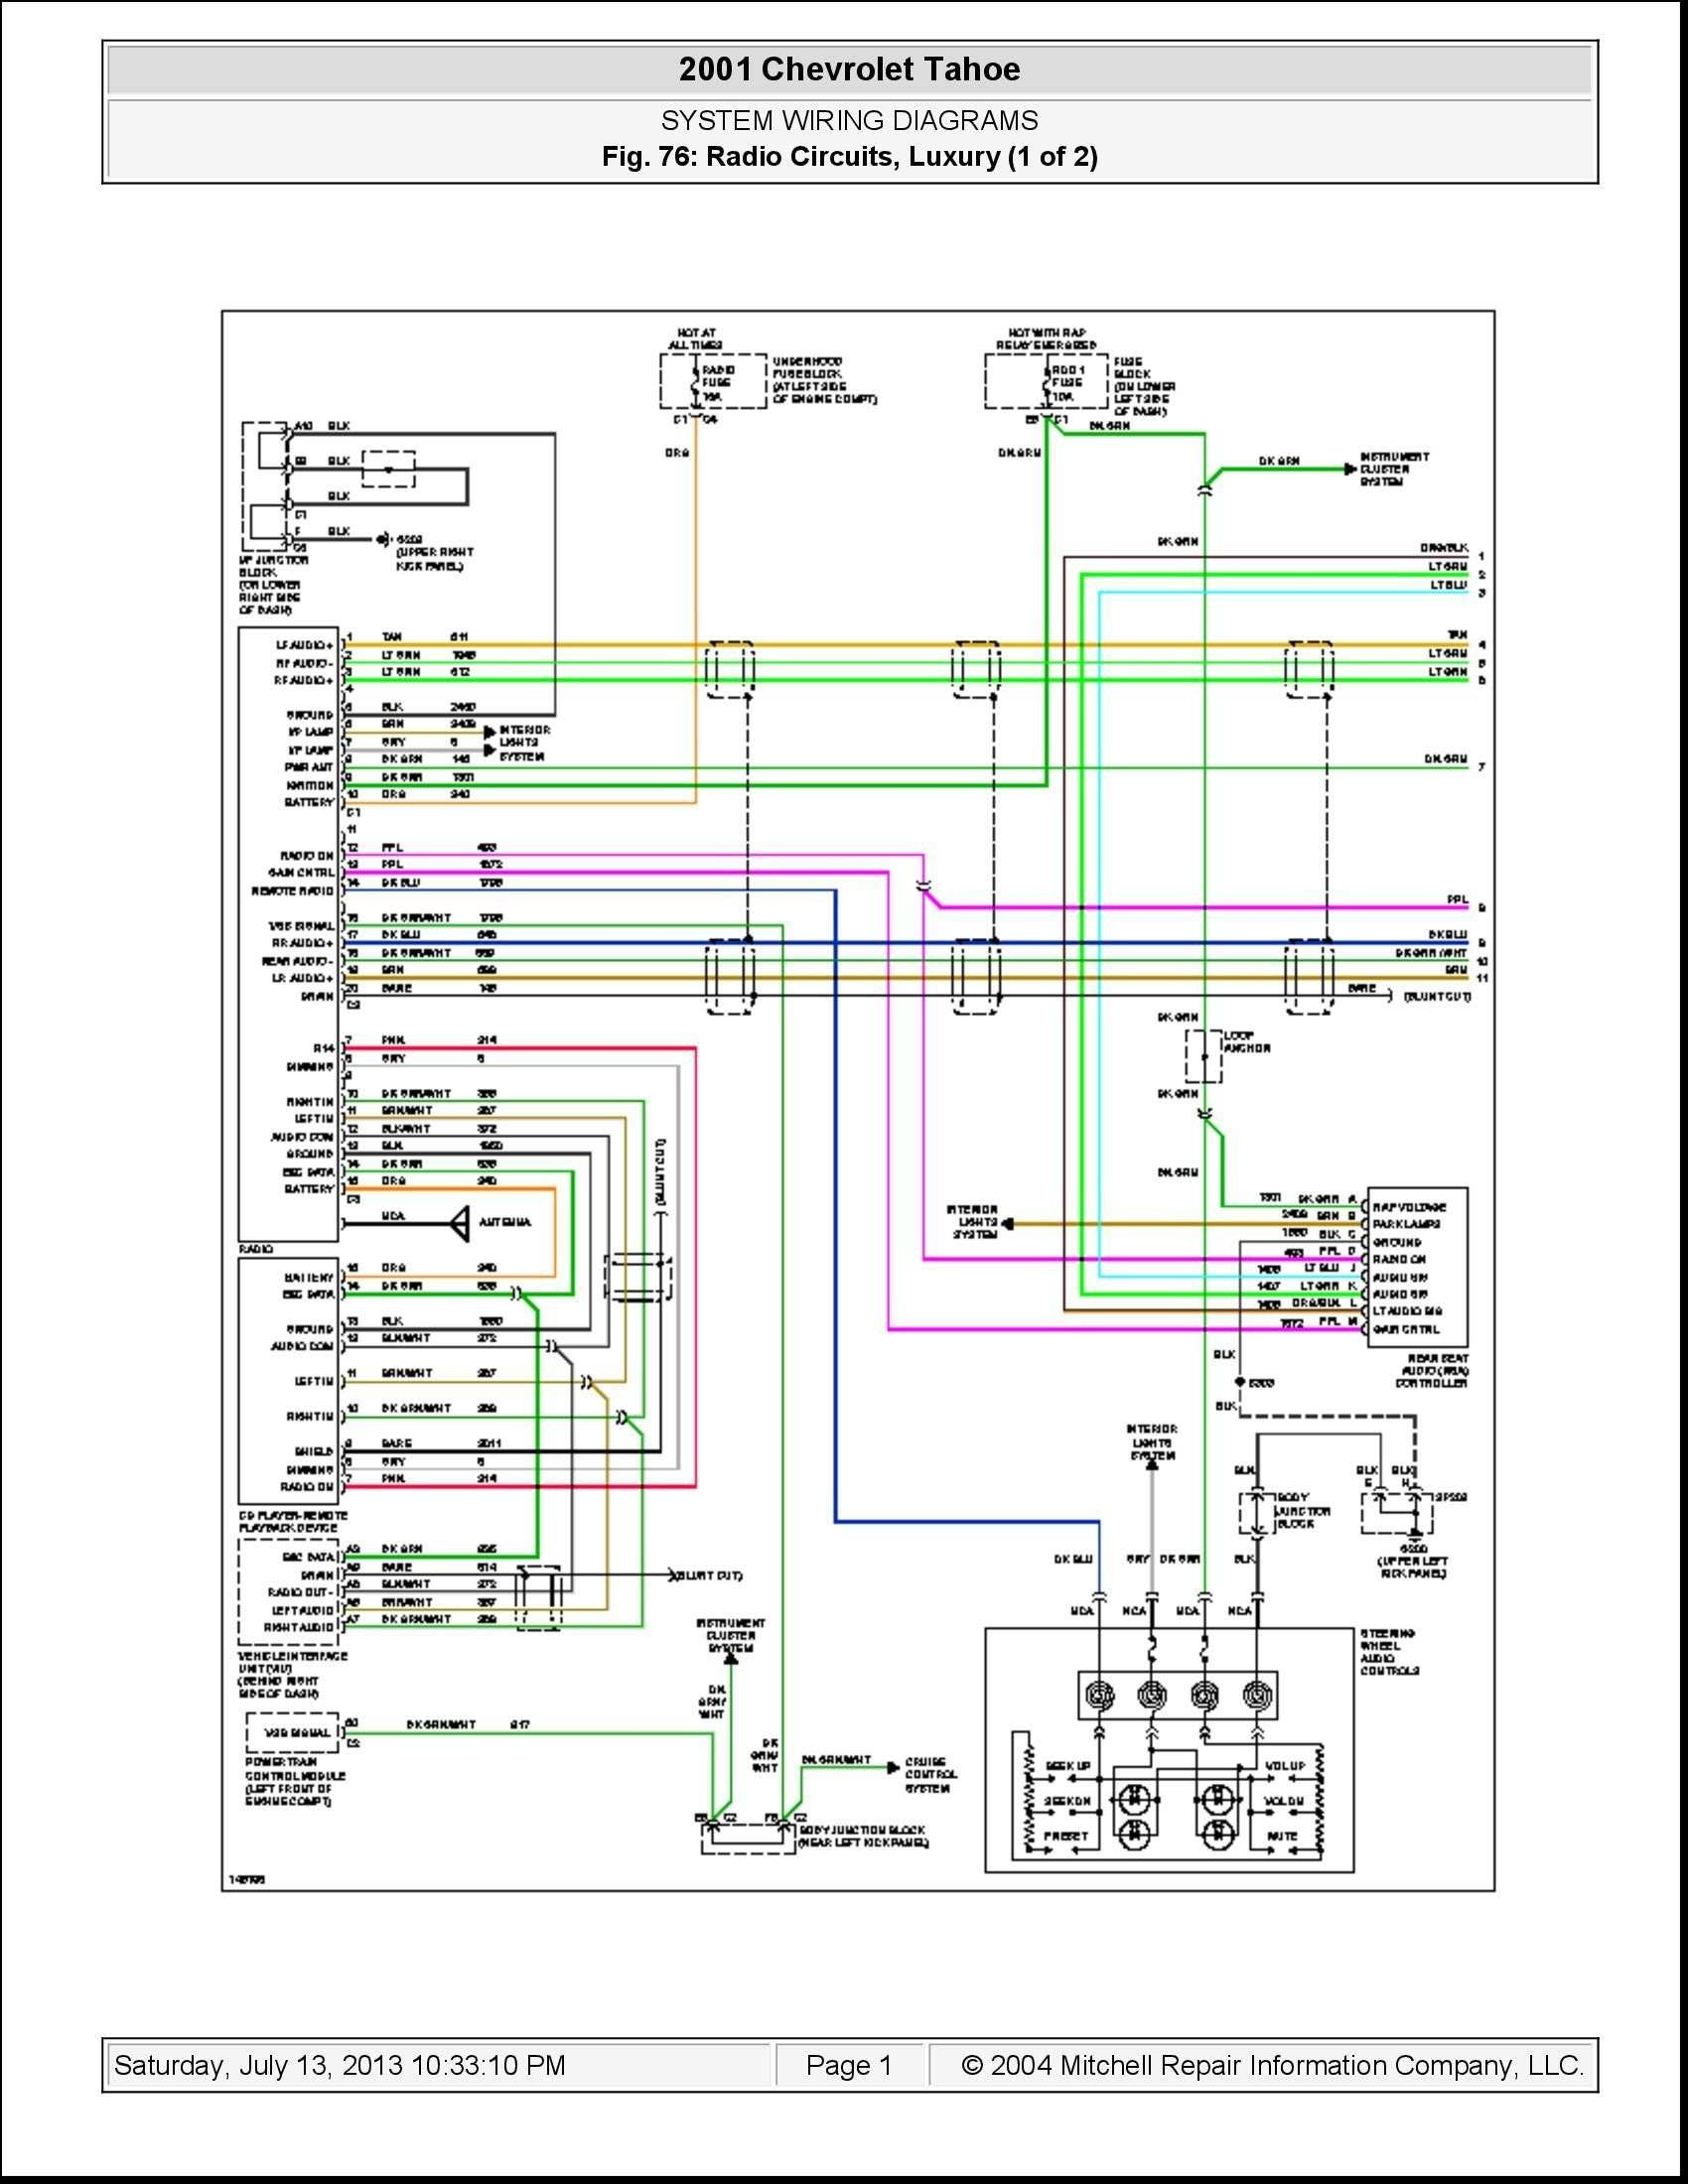 2005 tahoe wiring diagrams automotive wiring diagram library u2022 rh seigokanengland co uk 2005 chevrolet silverado radio wiring diagram 2005 chevy tahoe radio wiring diagram